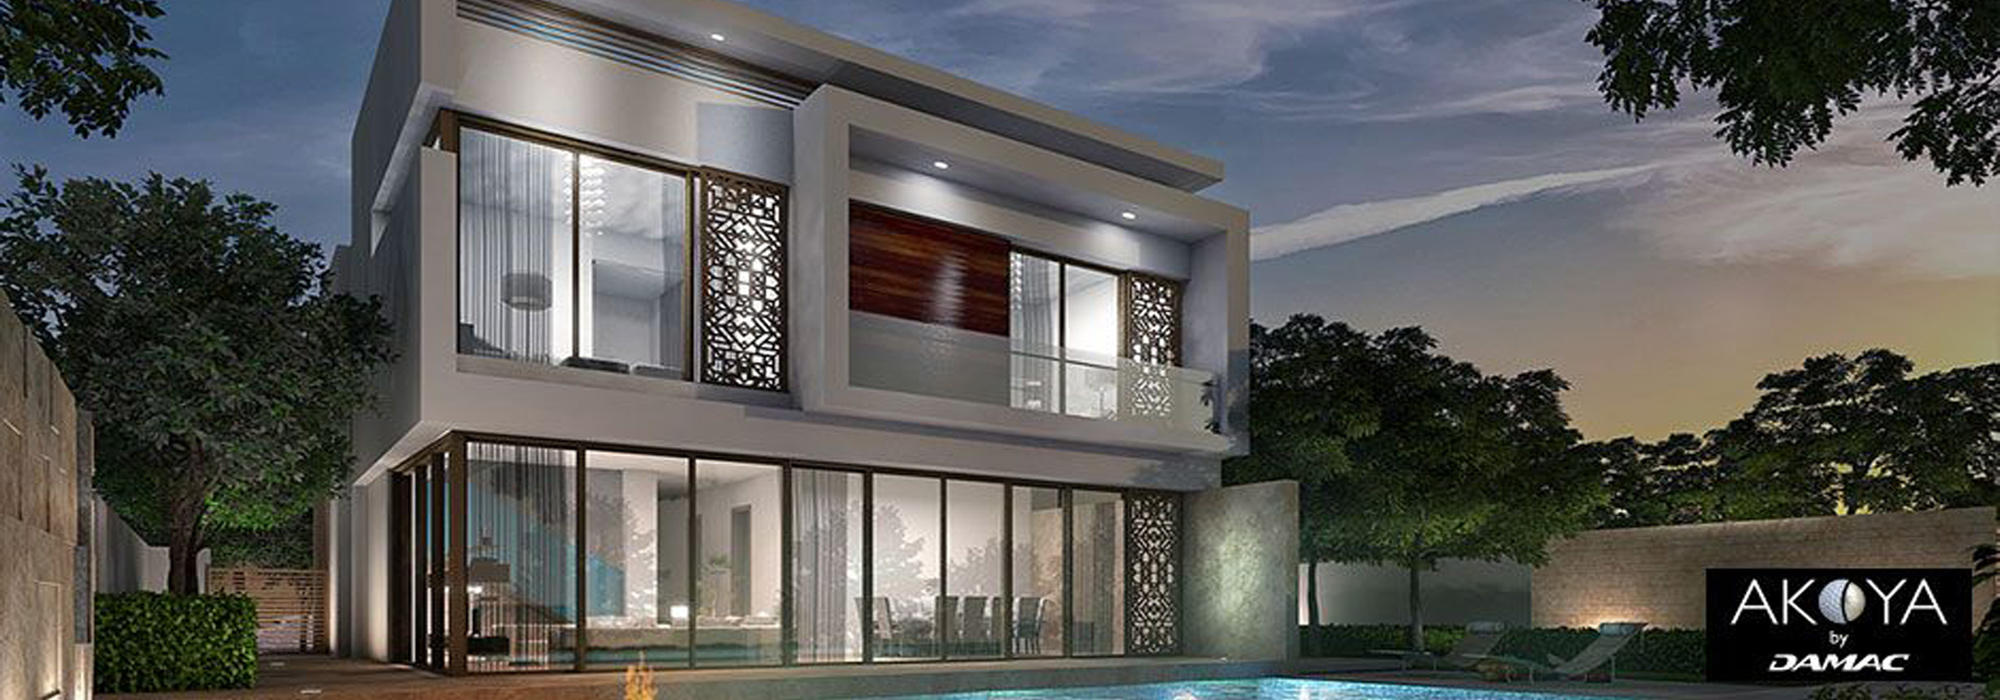 The August Placement An Ode To Fan Milk besides Plan Of Residential furthermore The Open Floor Plan 2 Bedroom House Plans With furthermore 3 Bedroom House Plans Ideas besides 1558653981. on ghana new homes